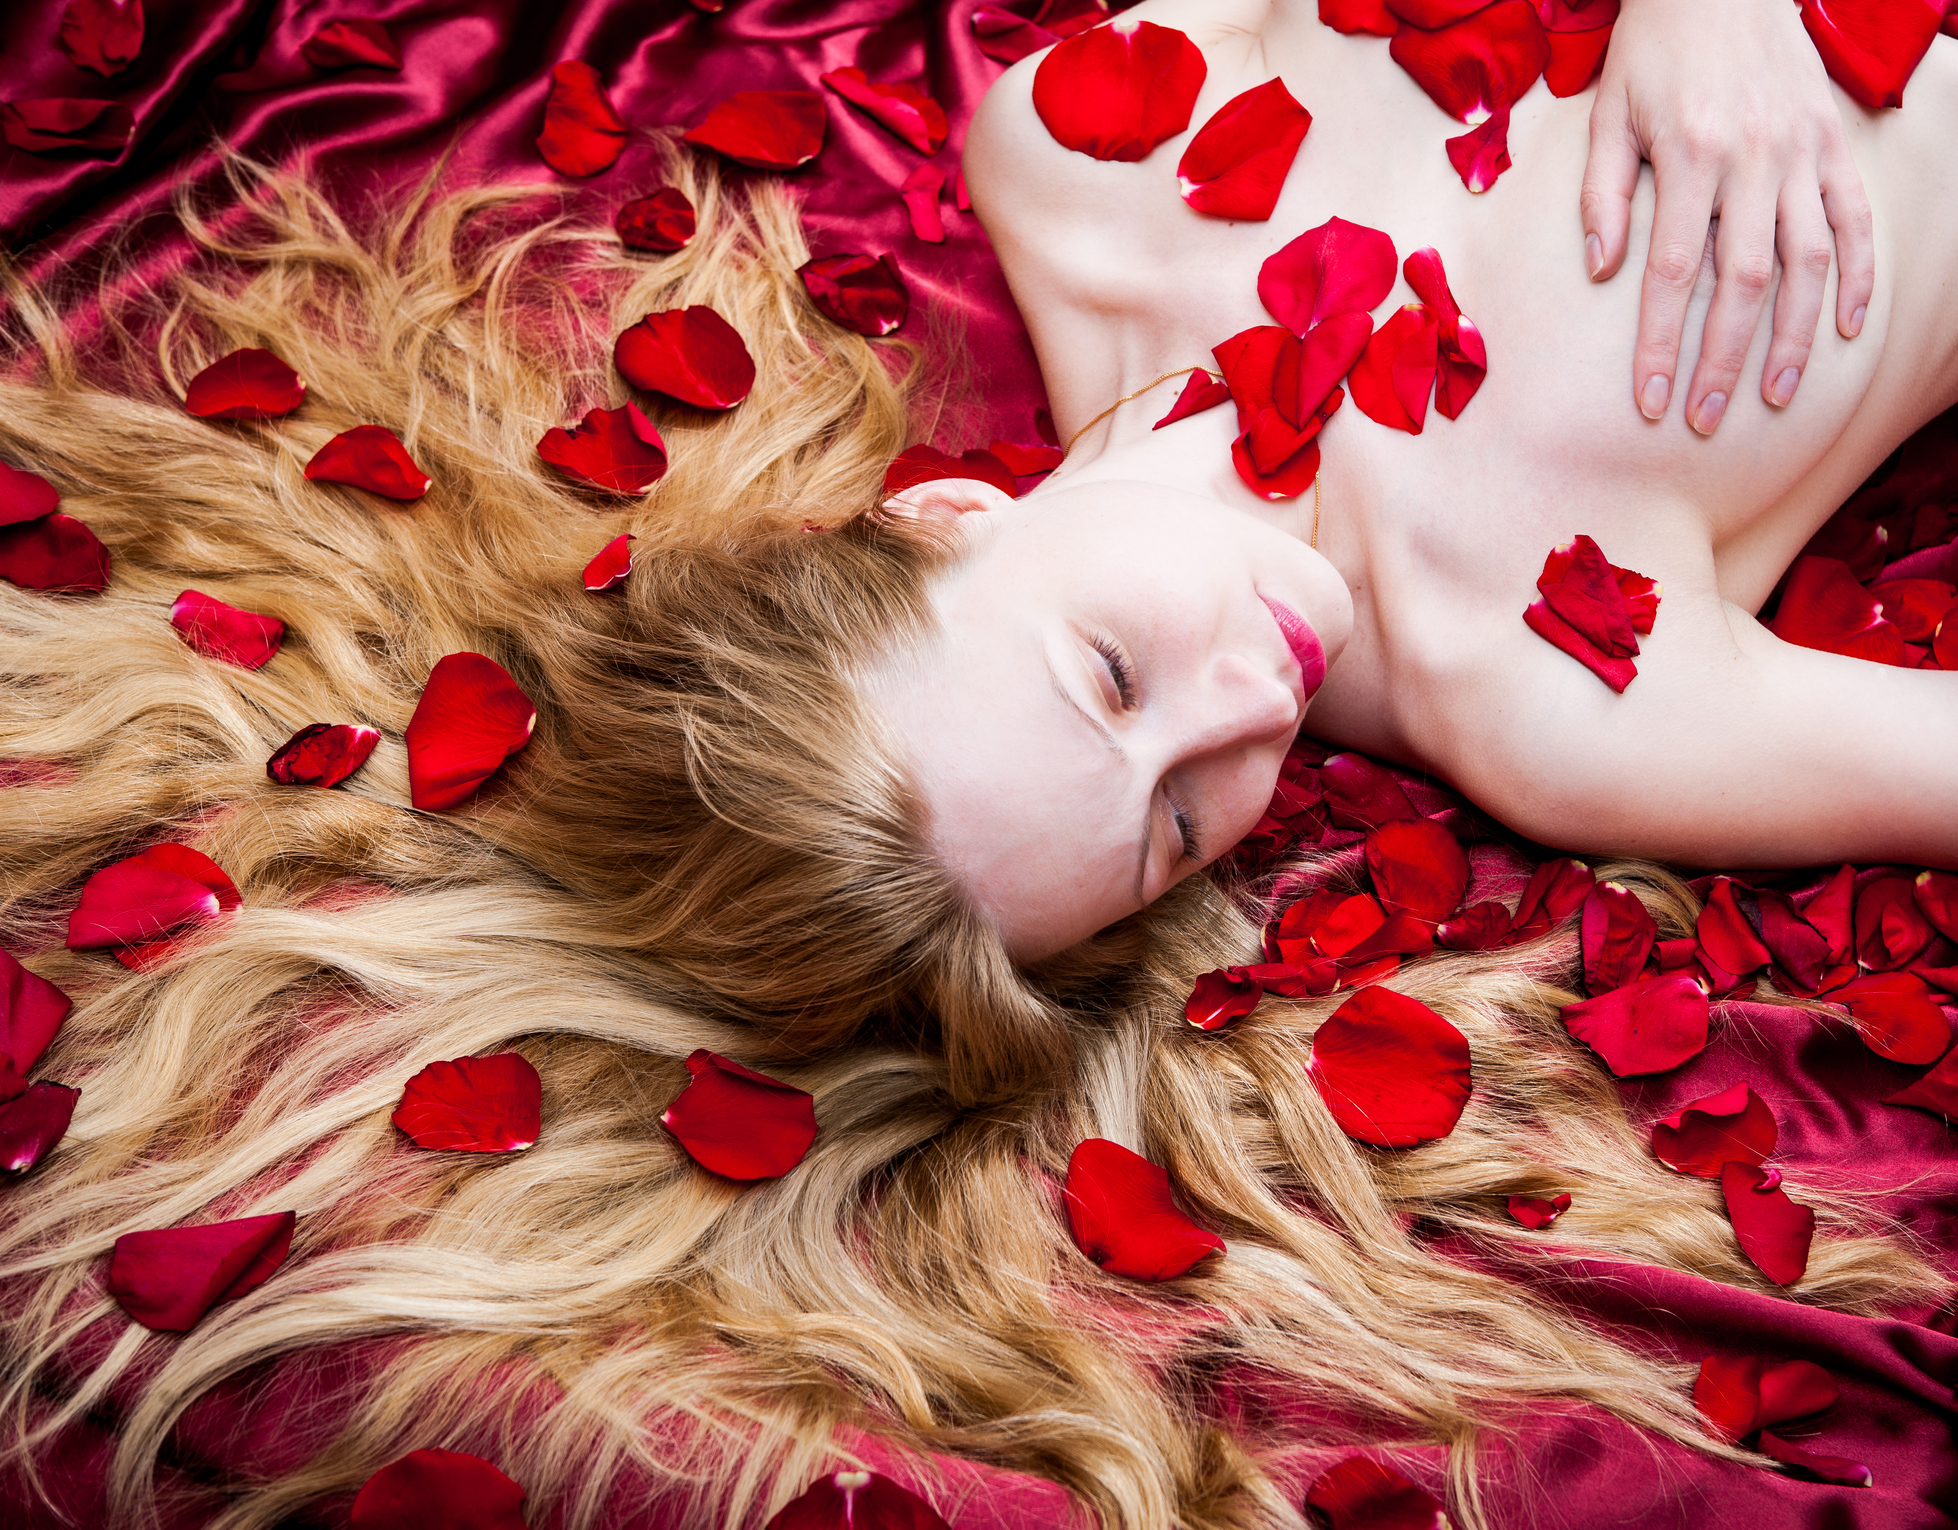 Law Of Attraction and Seduction - Psychic 101